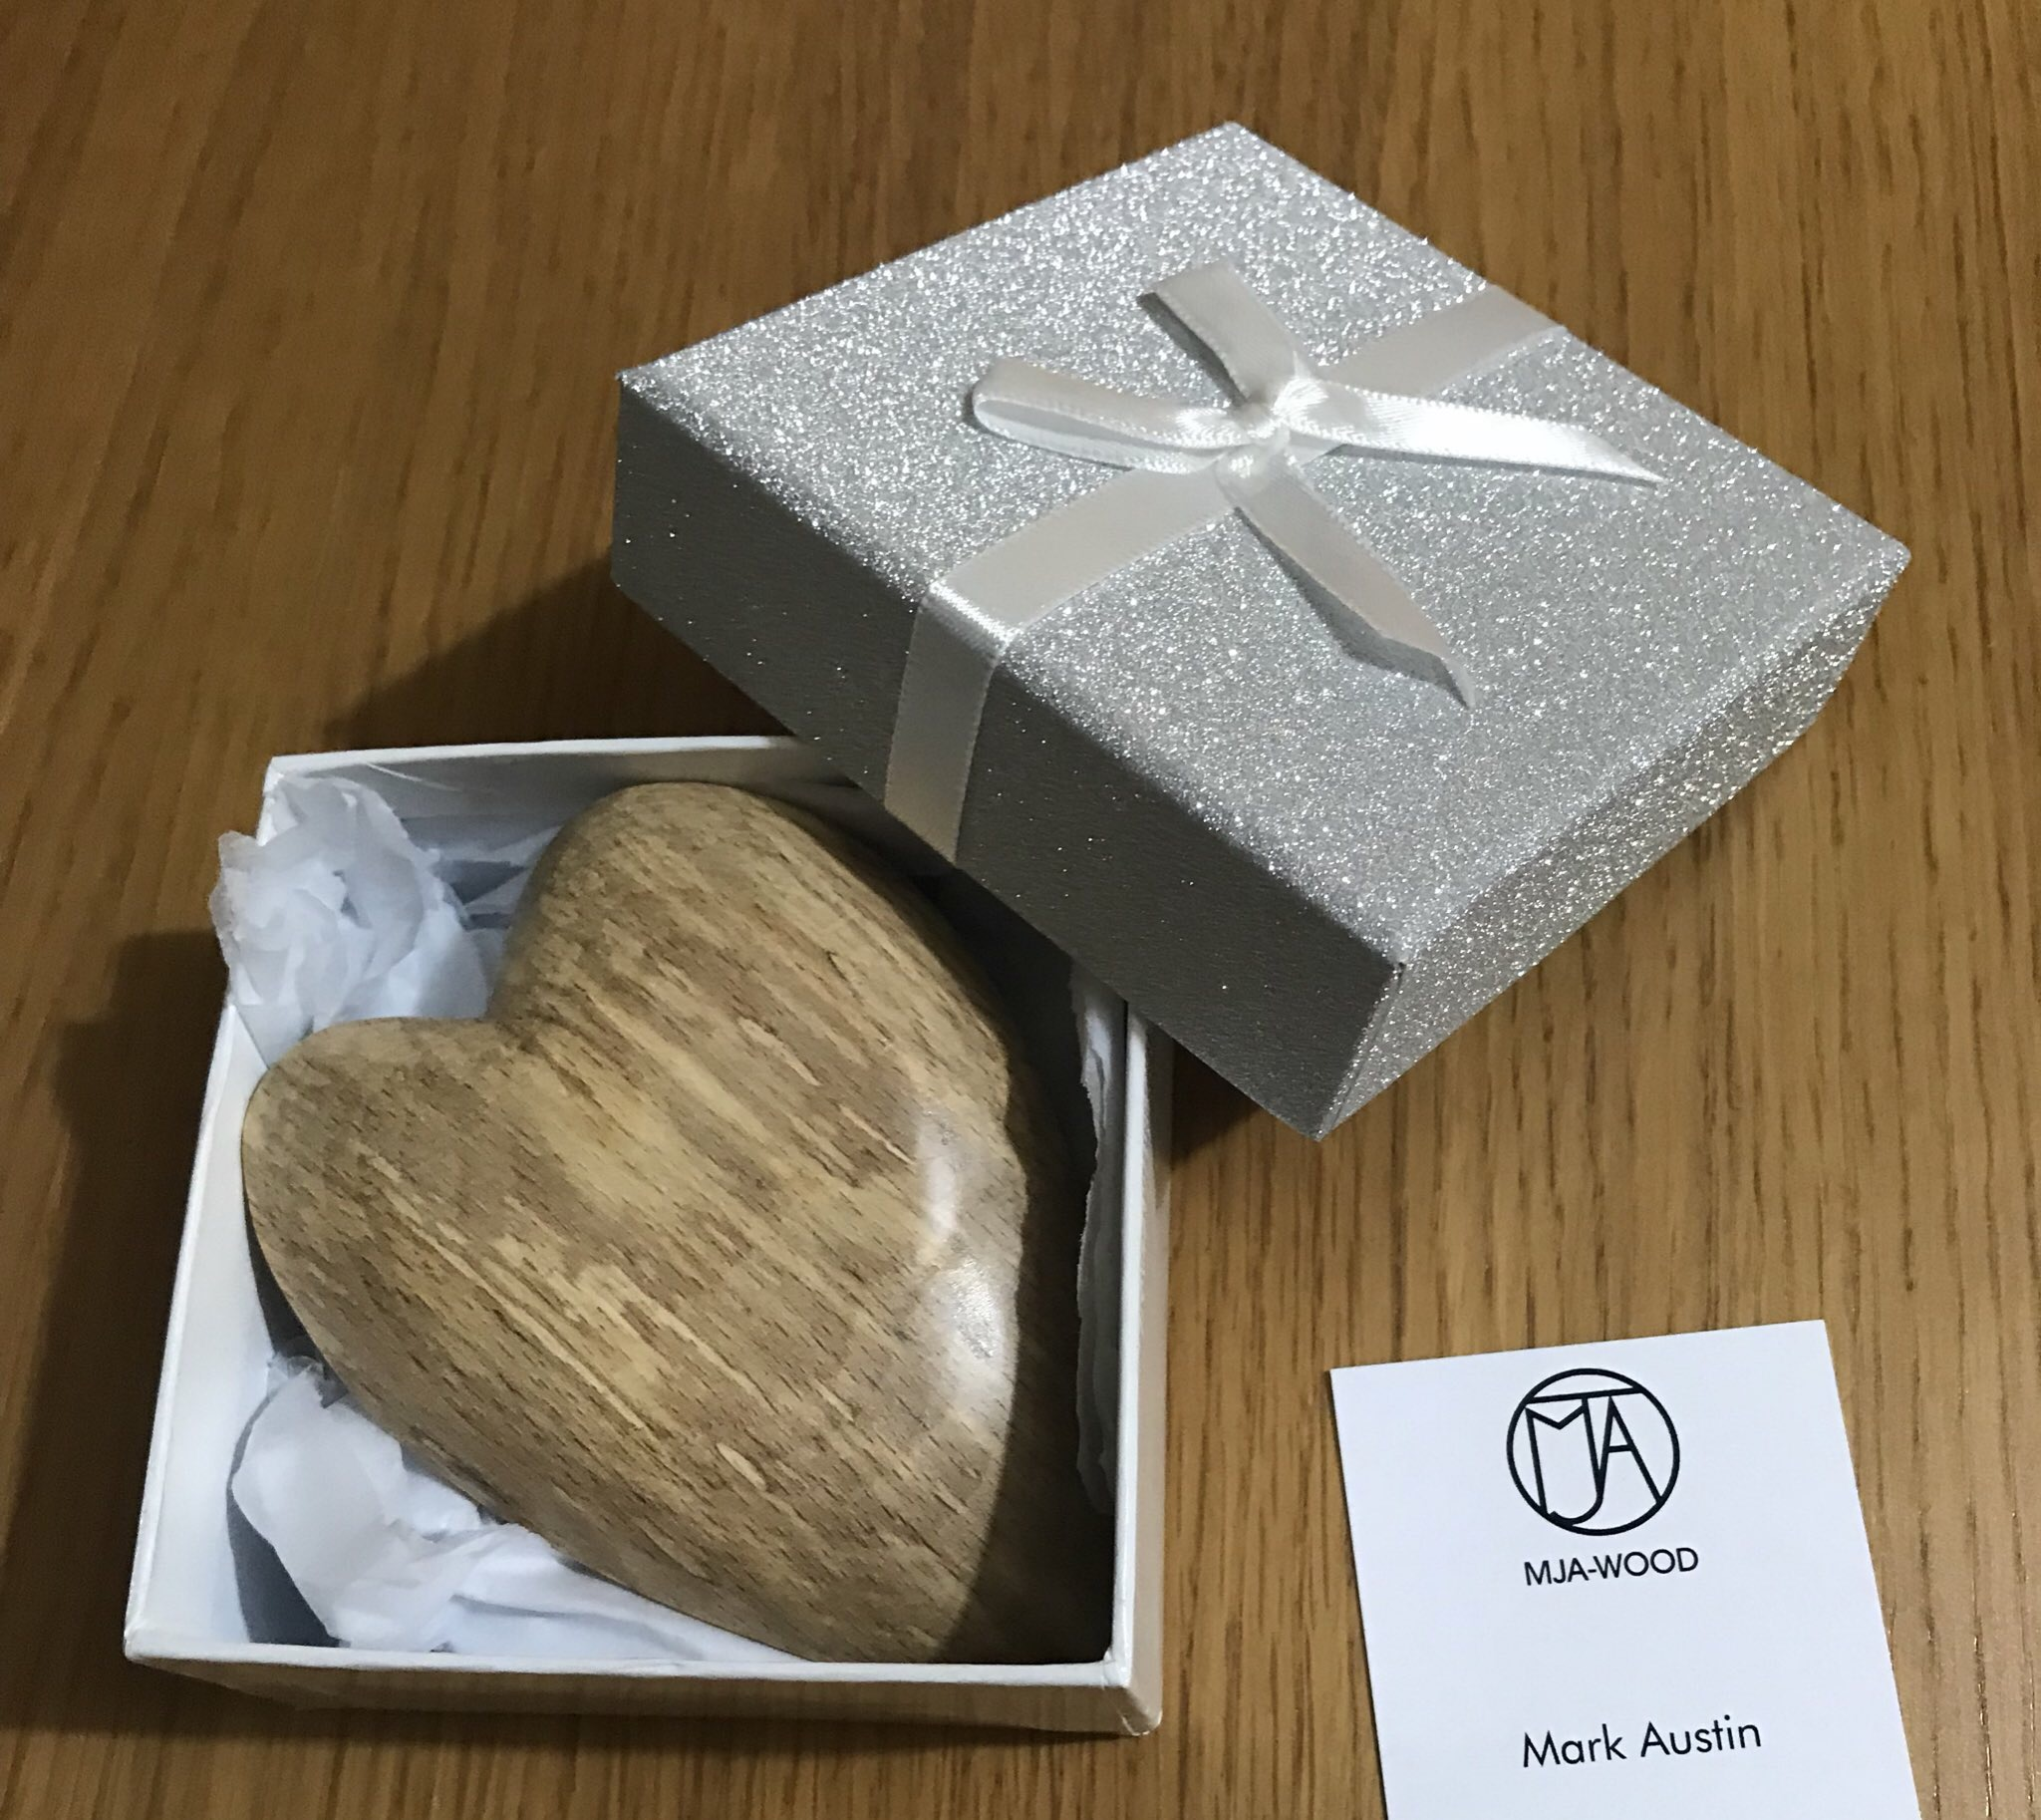 woodturning in Sussex | About | East Sussex | MJA-WOOD